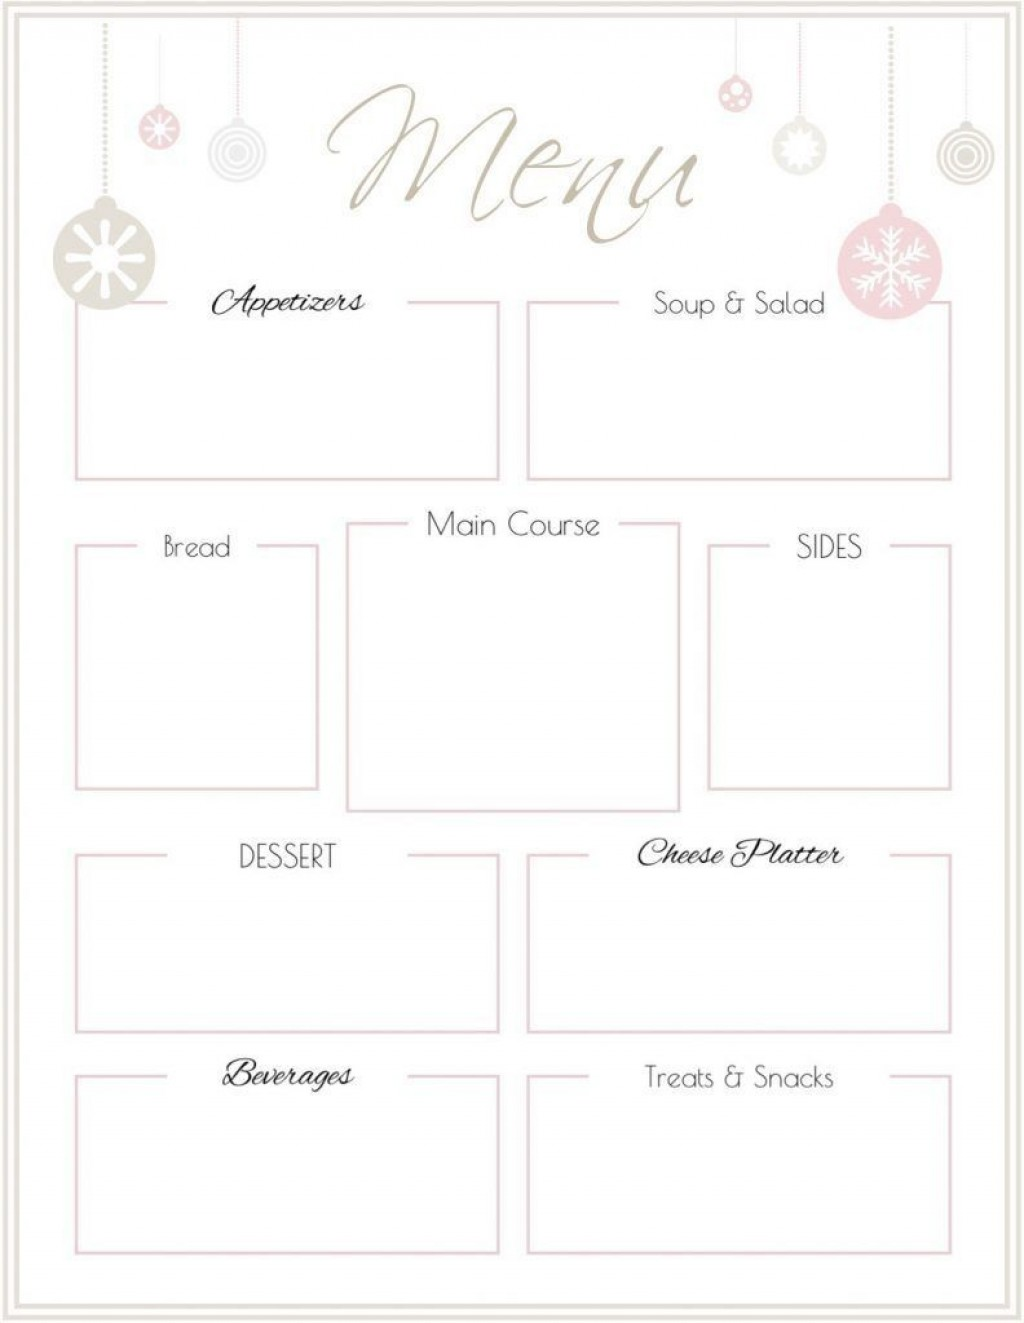 007 Remarkable Free Printable Menu Template Picture  For Dinner Party FamilyLarge